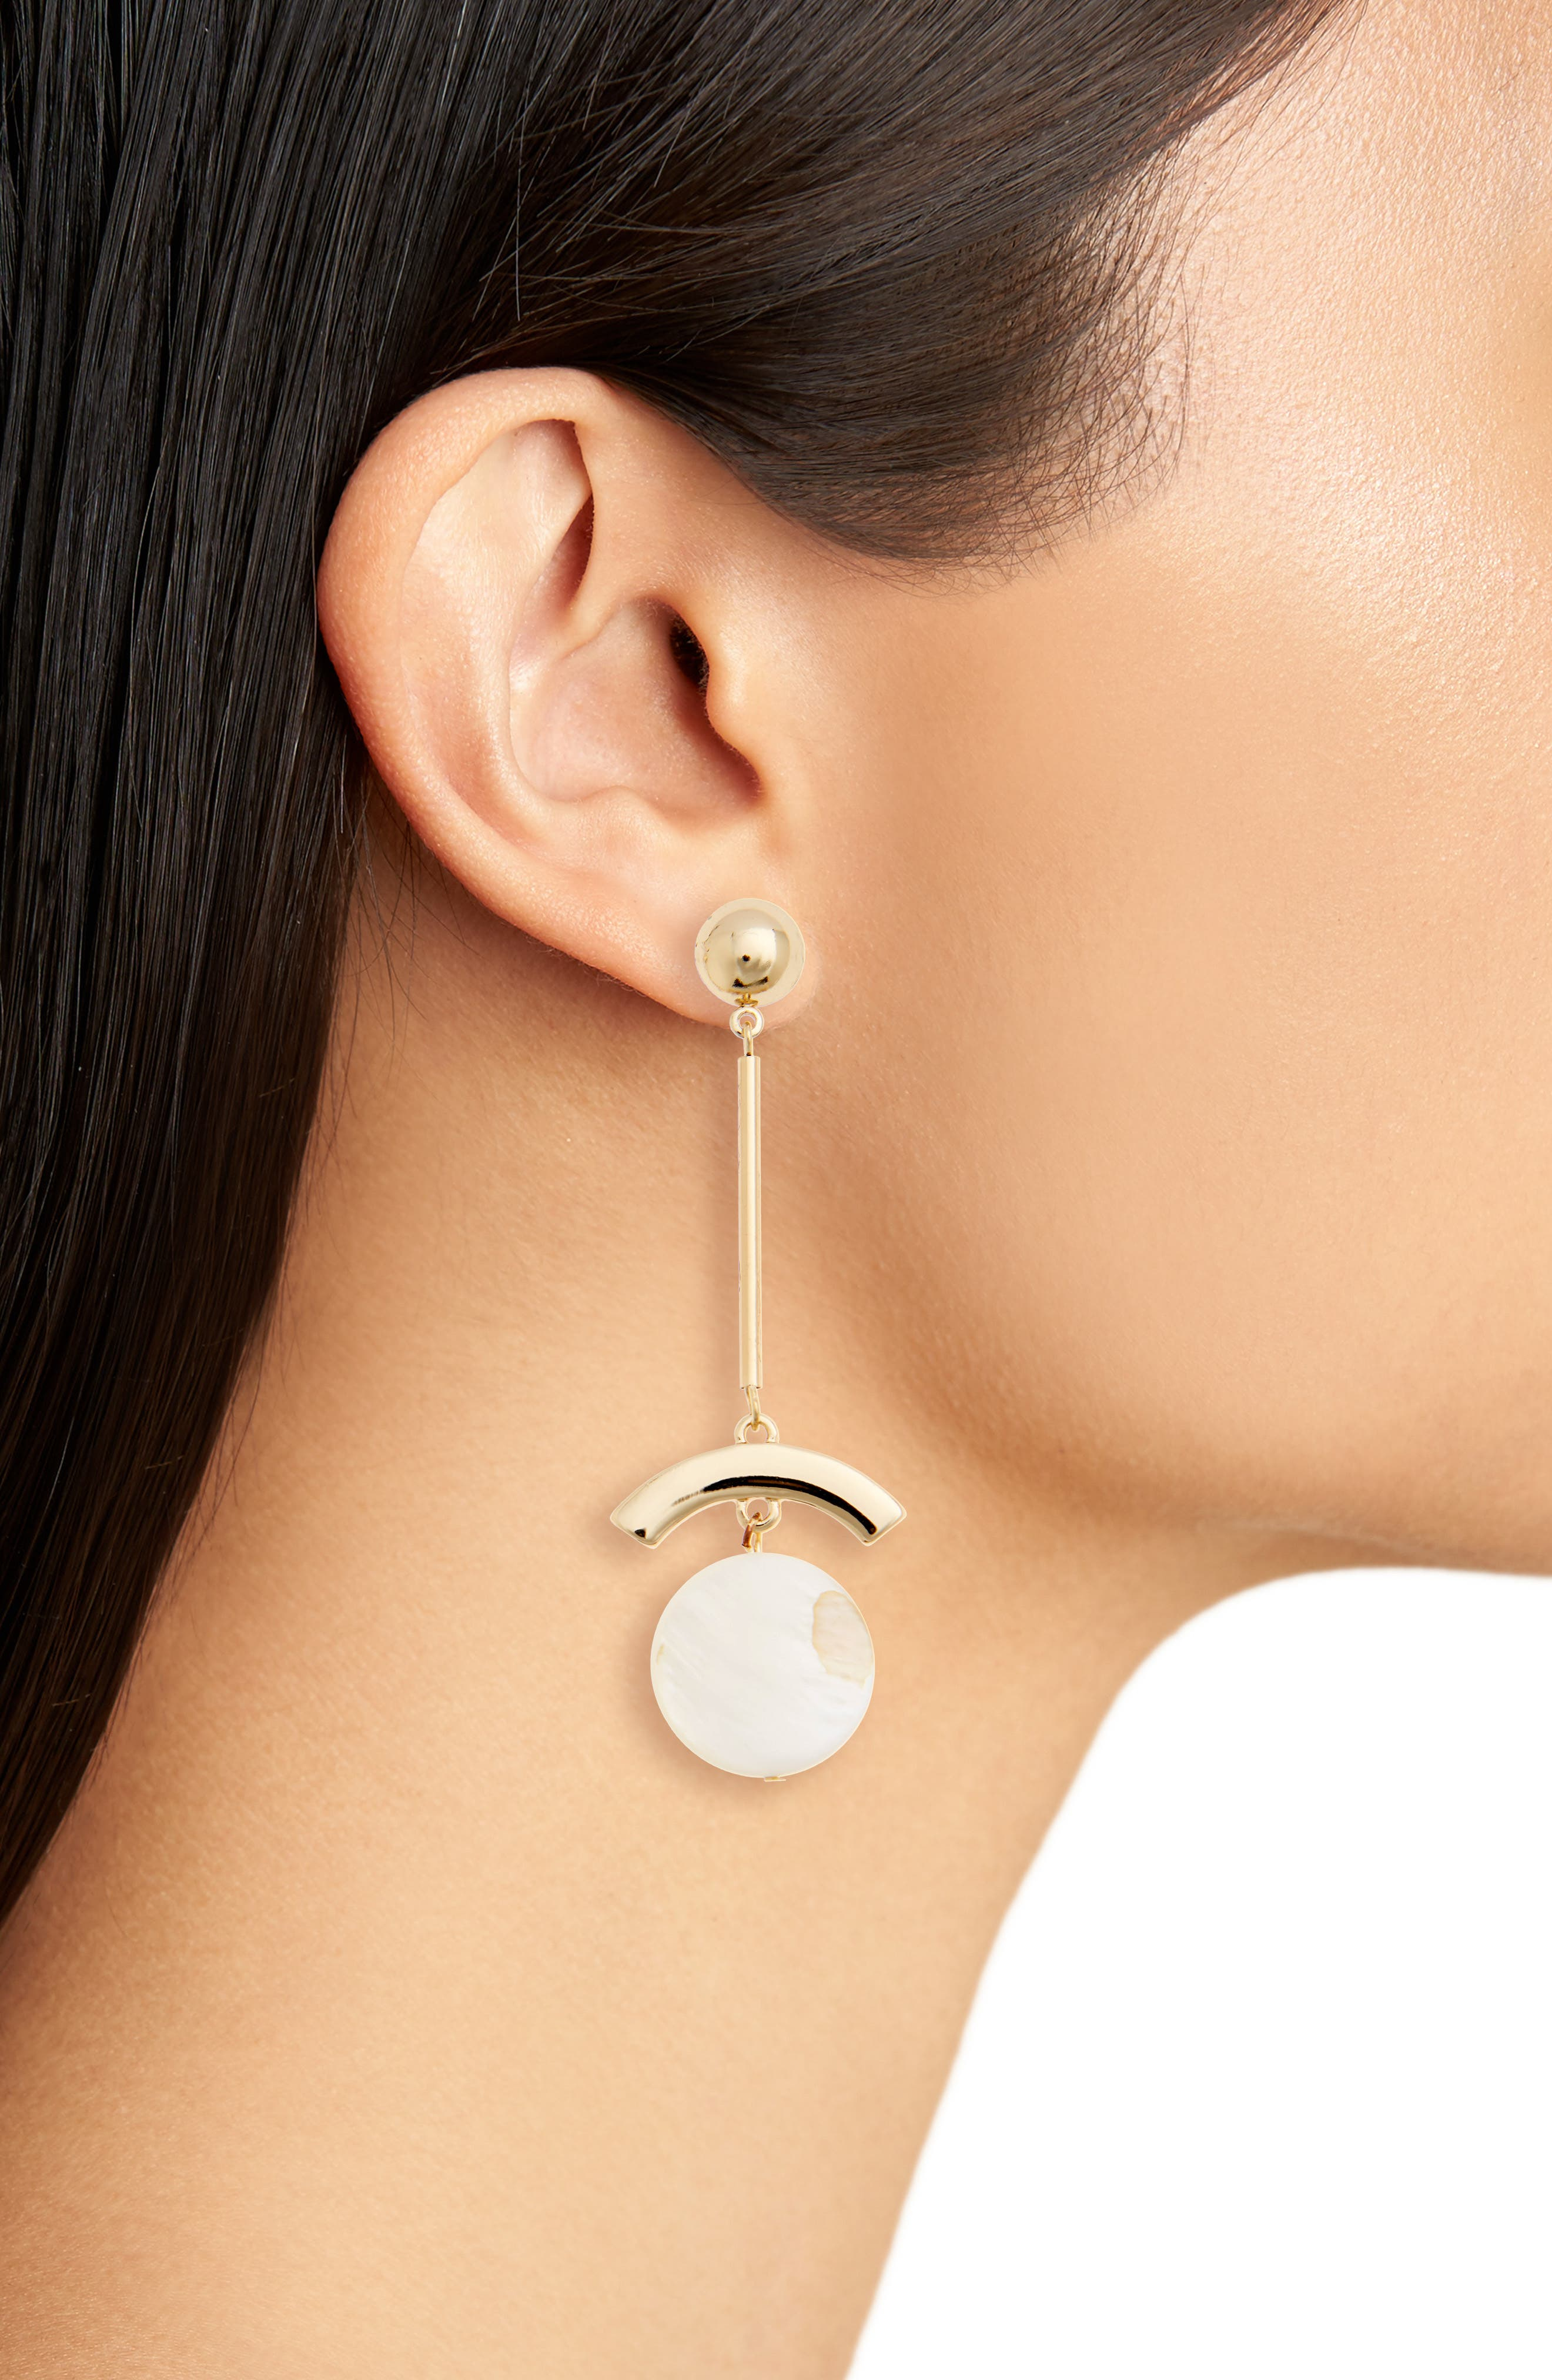 Mother of Pearl Drop Earrings,                             Alternate thumbnail 2, color,                             710